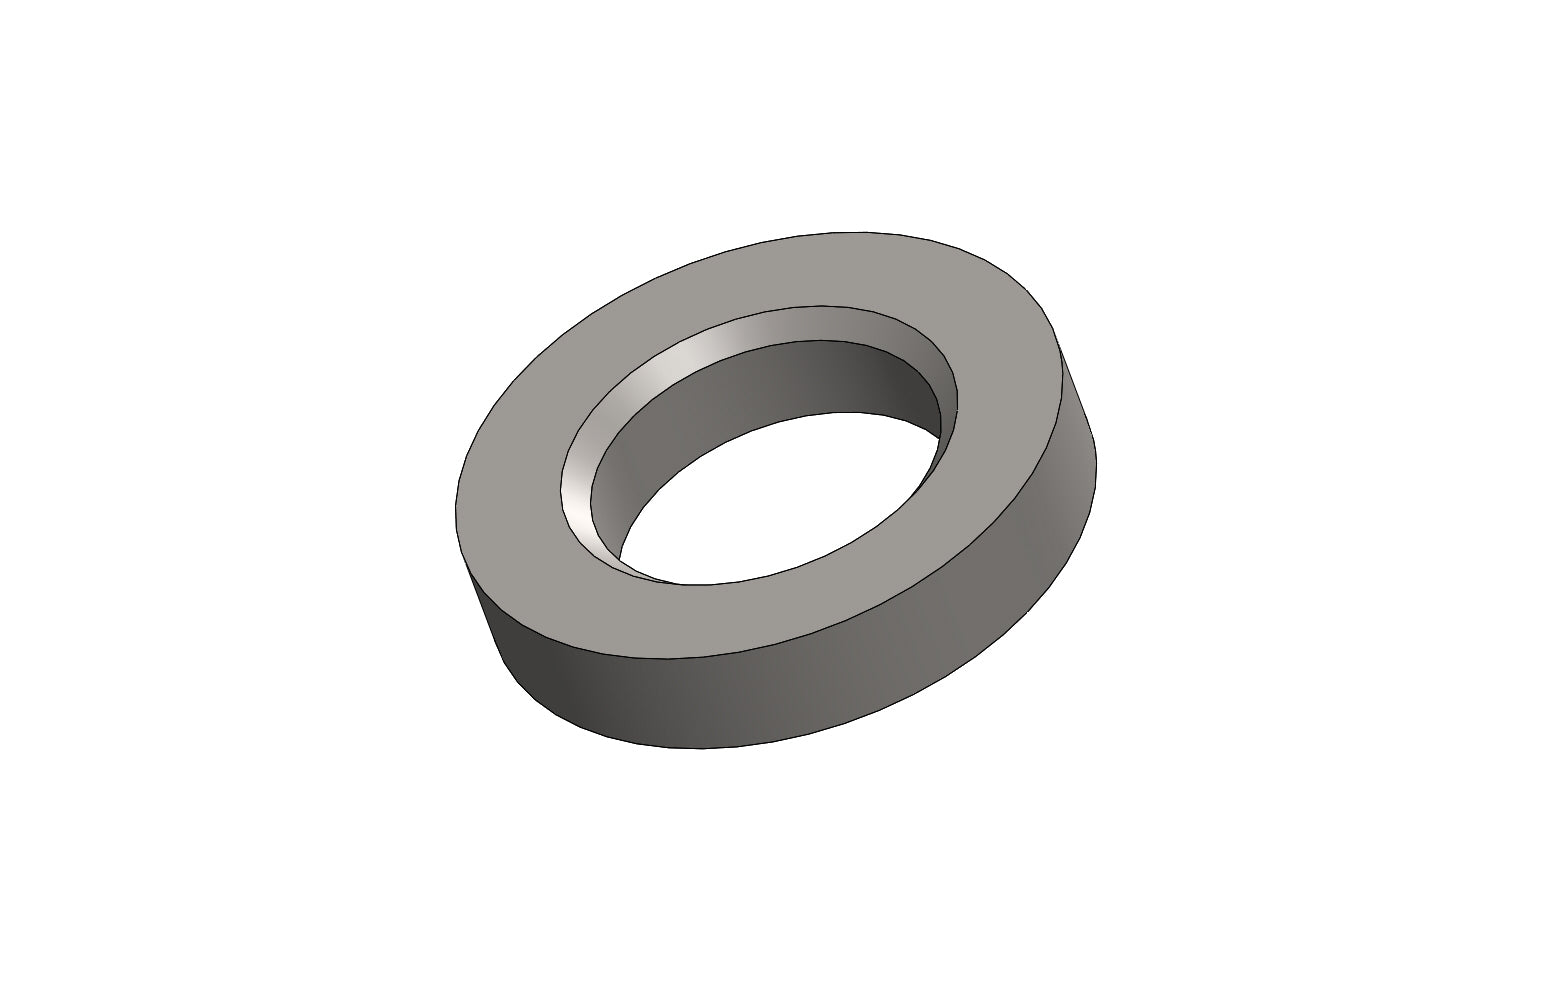 LAH11999 - COLLAR for use with King Labelling Machines